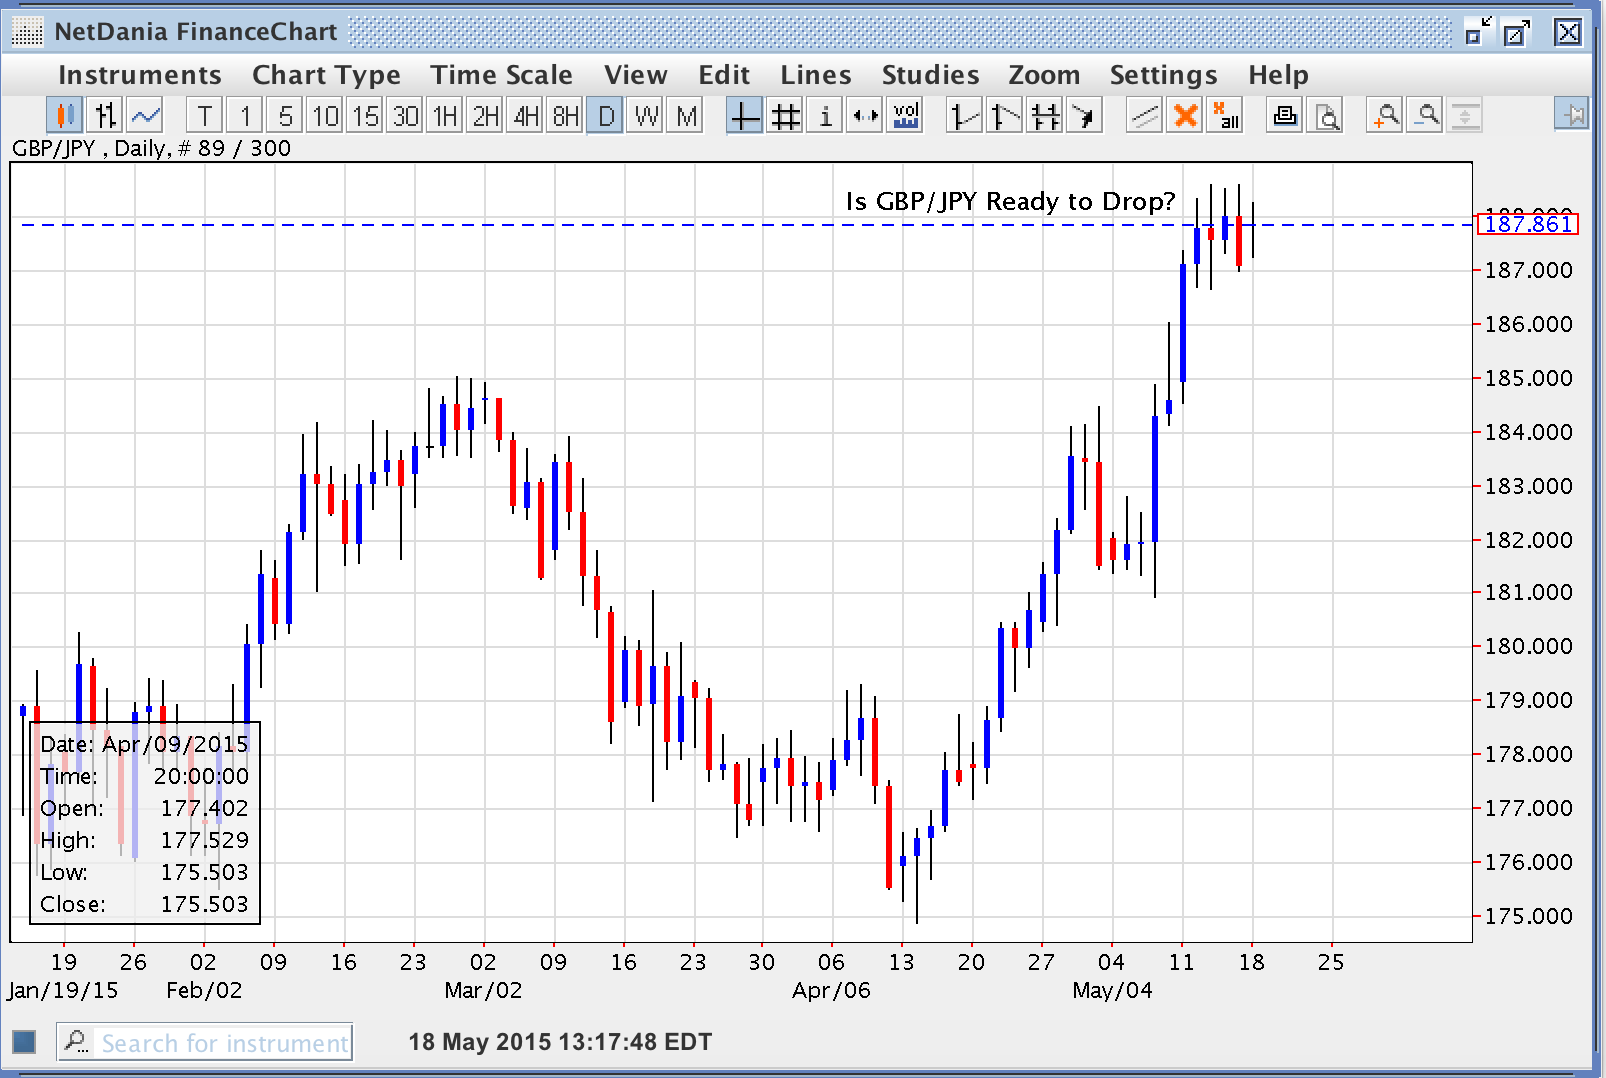 Is GBP/JPY Ready To Drop?